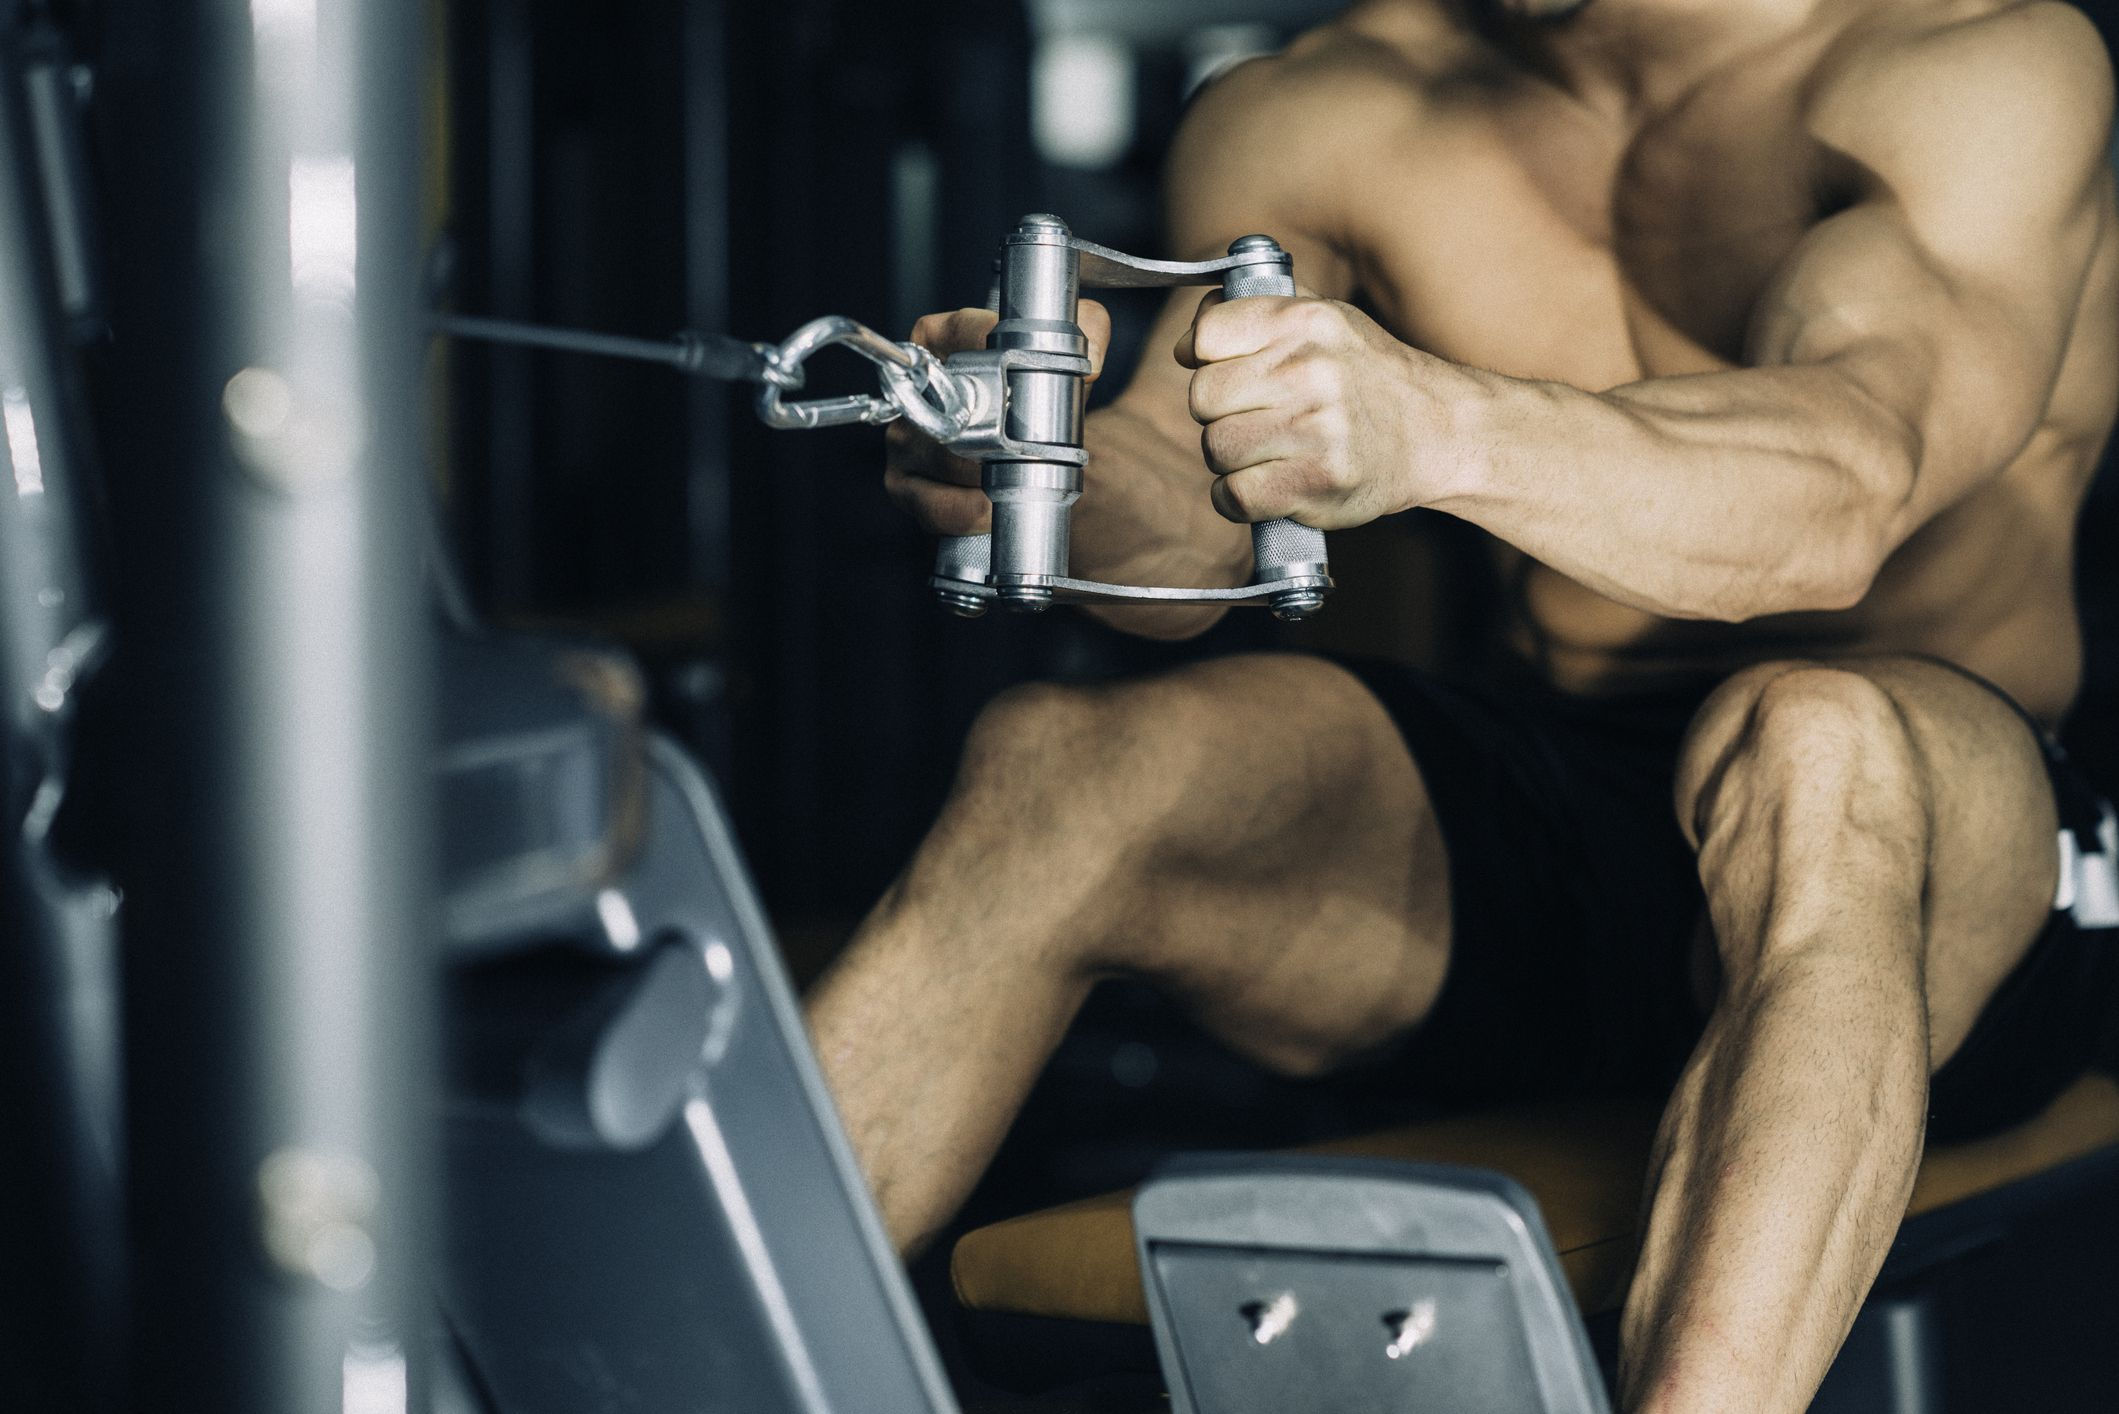 Smash Through Calories with This 240-rep Workout